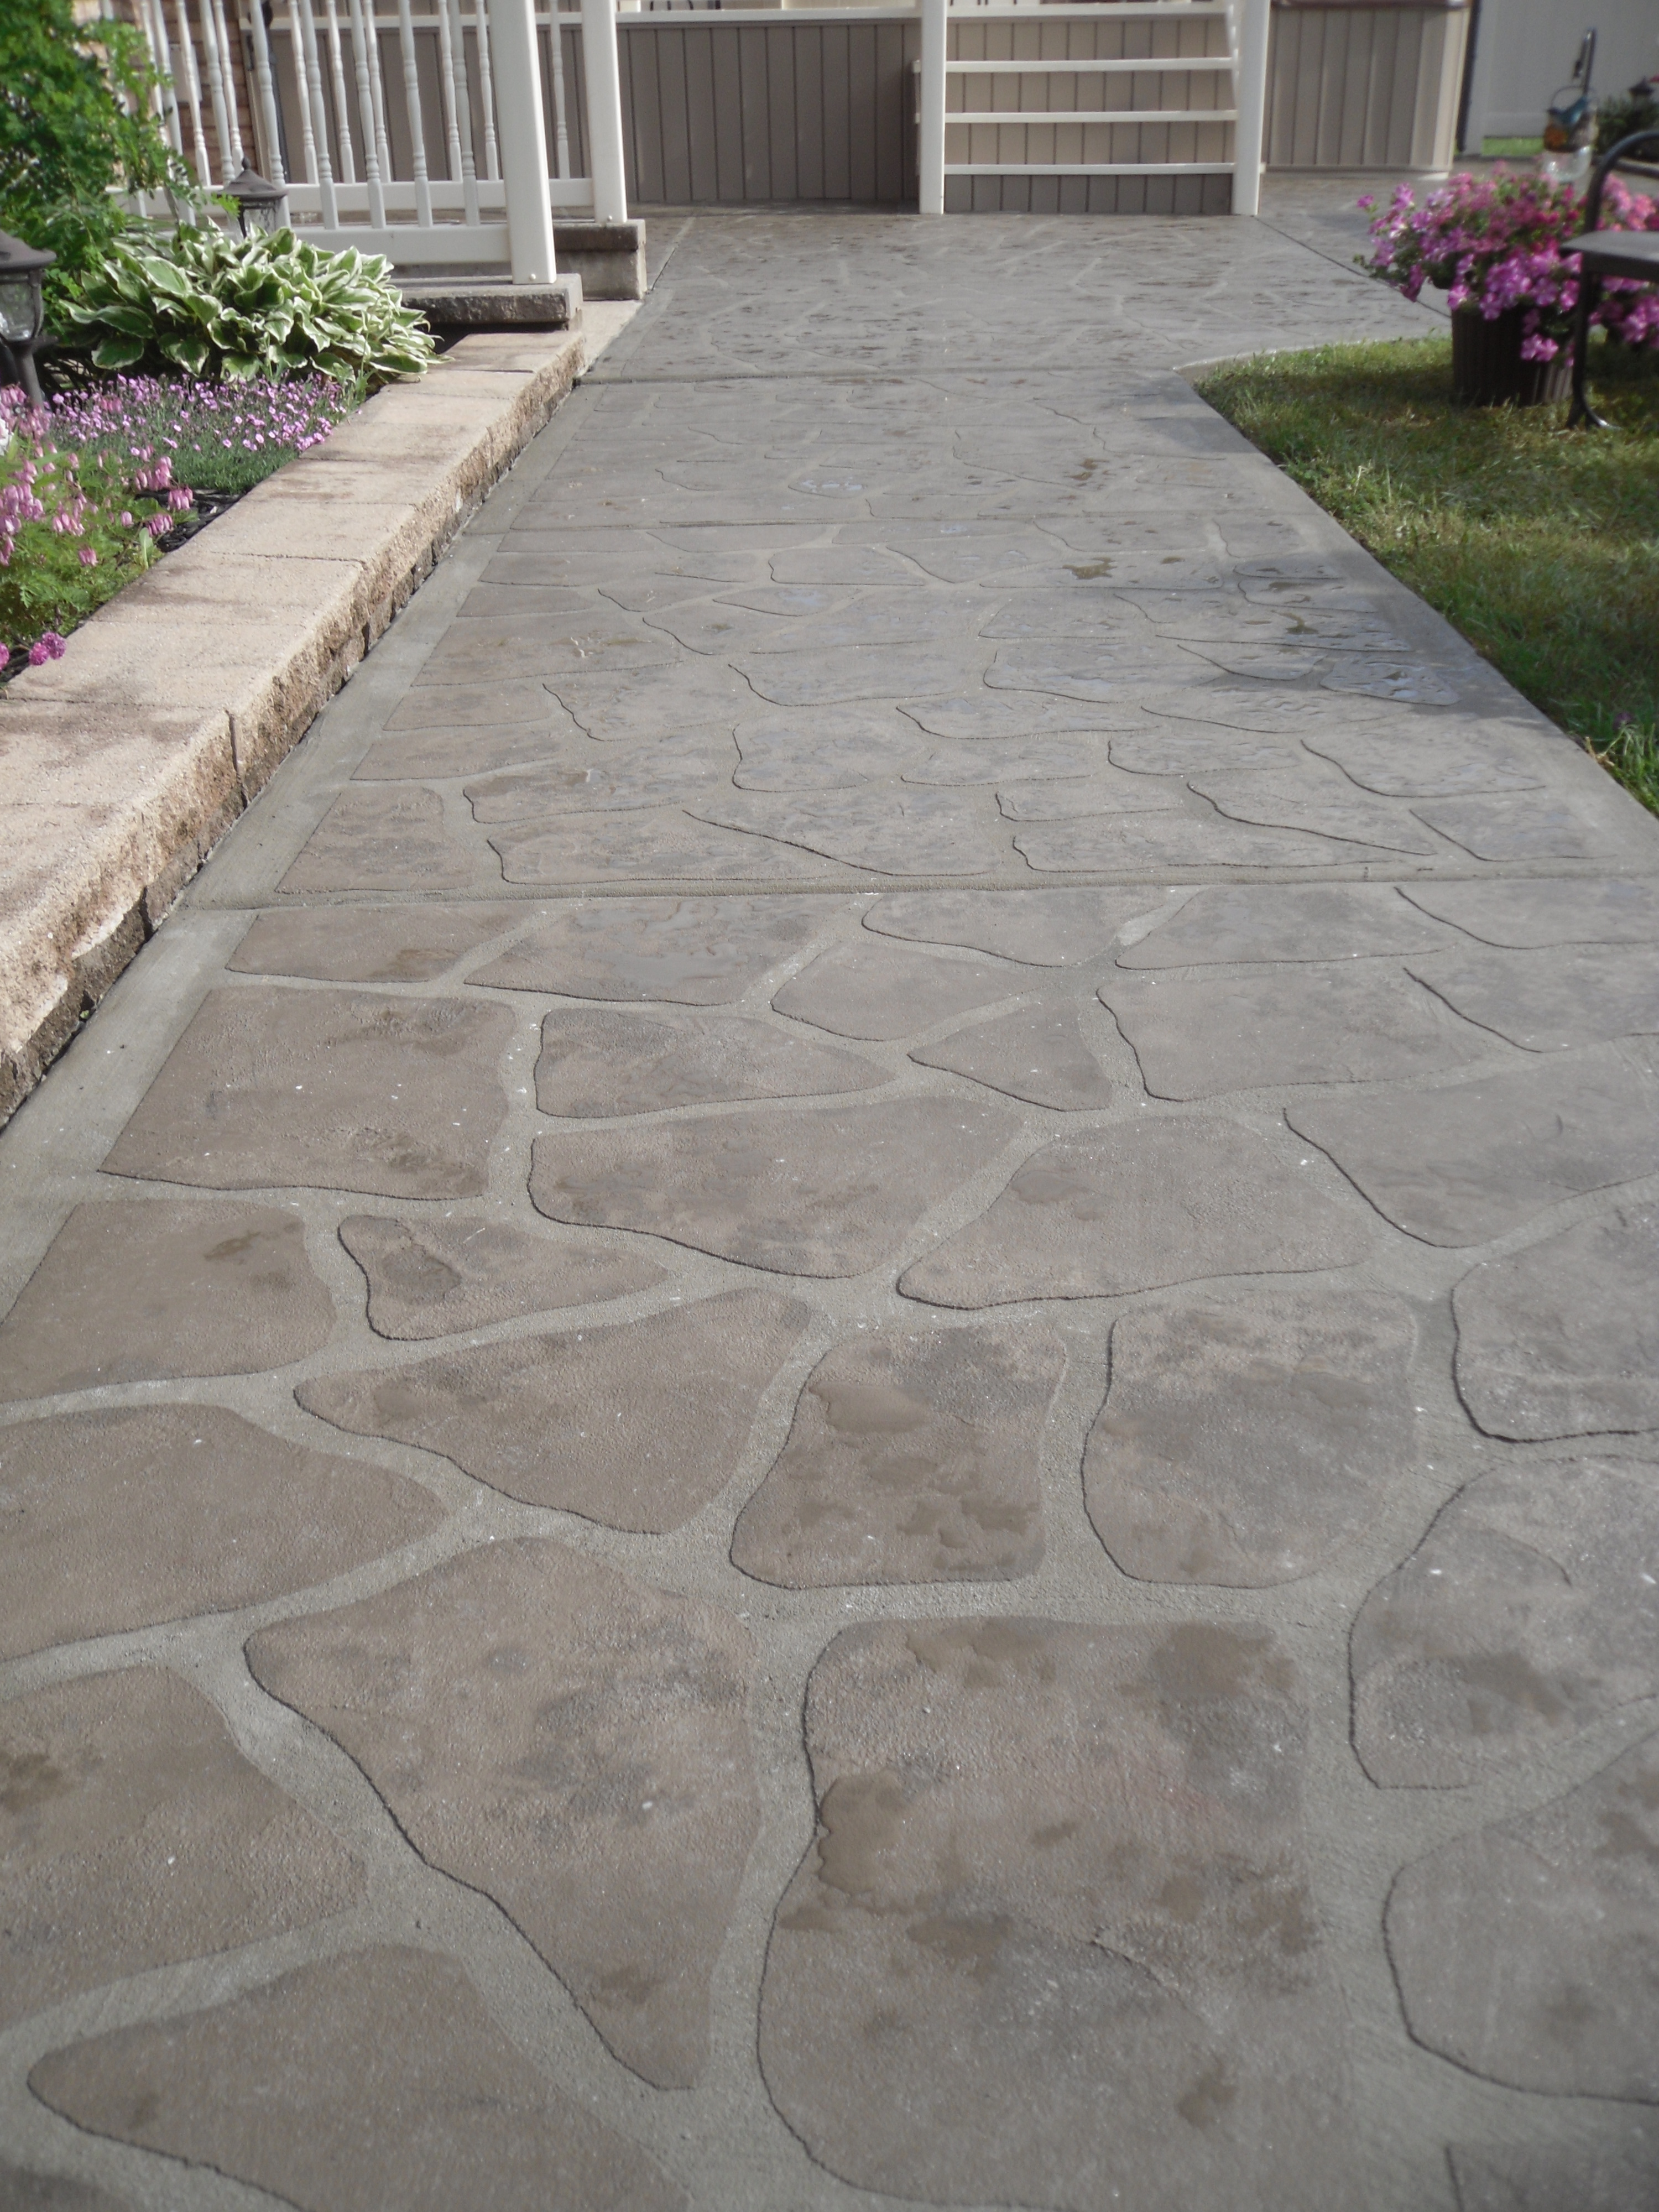 How To Resurface A Patio Sulechownet